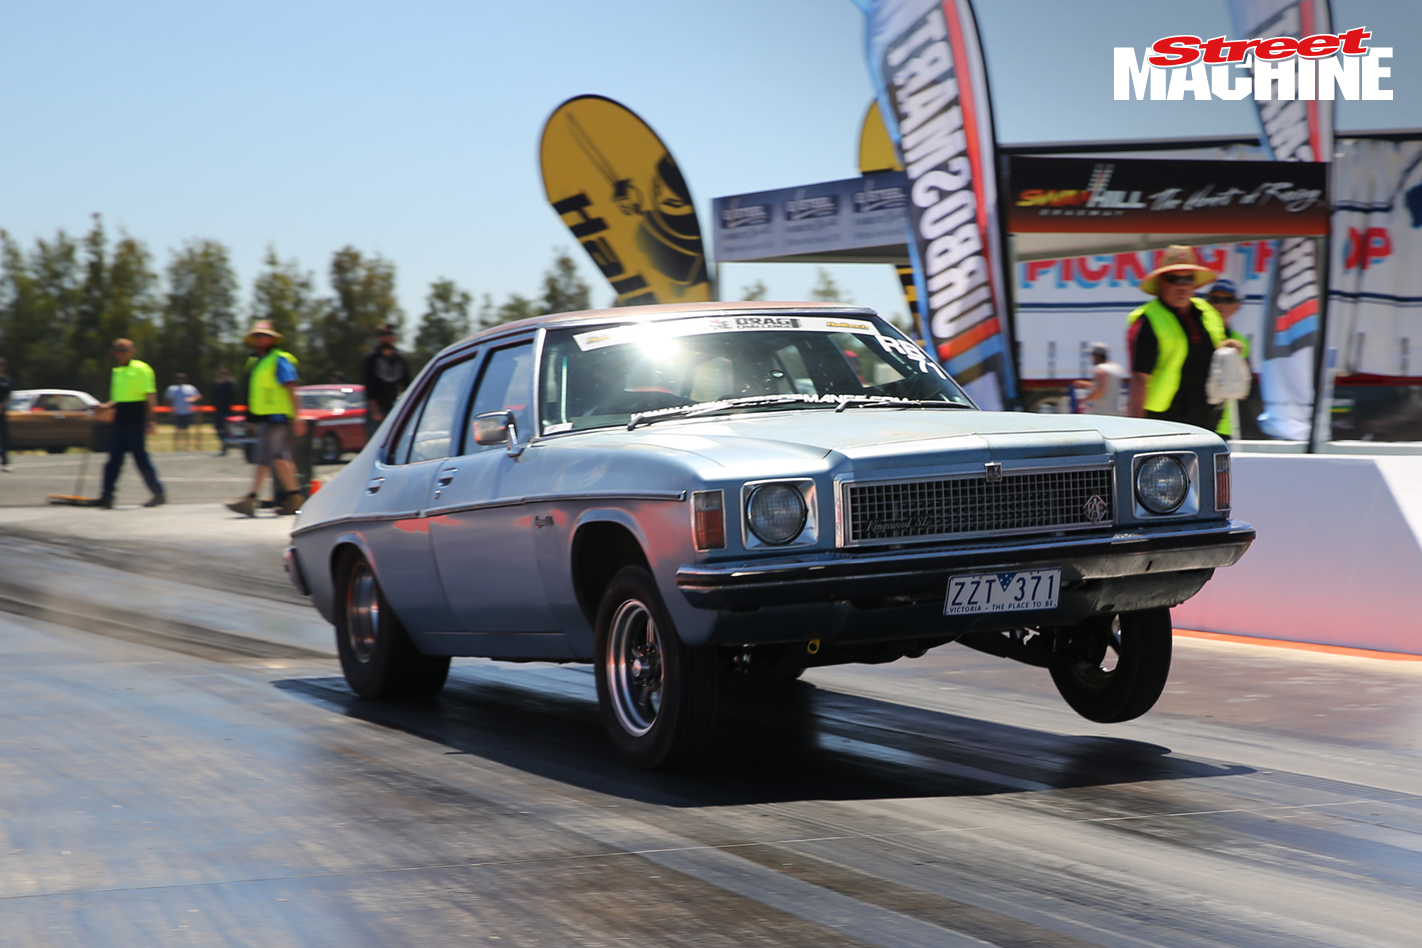 Crusty Torana Lsx Turbo Drag Challenge